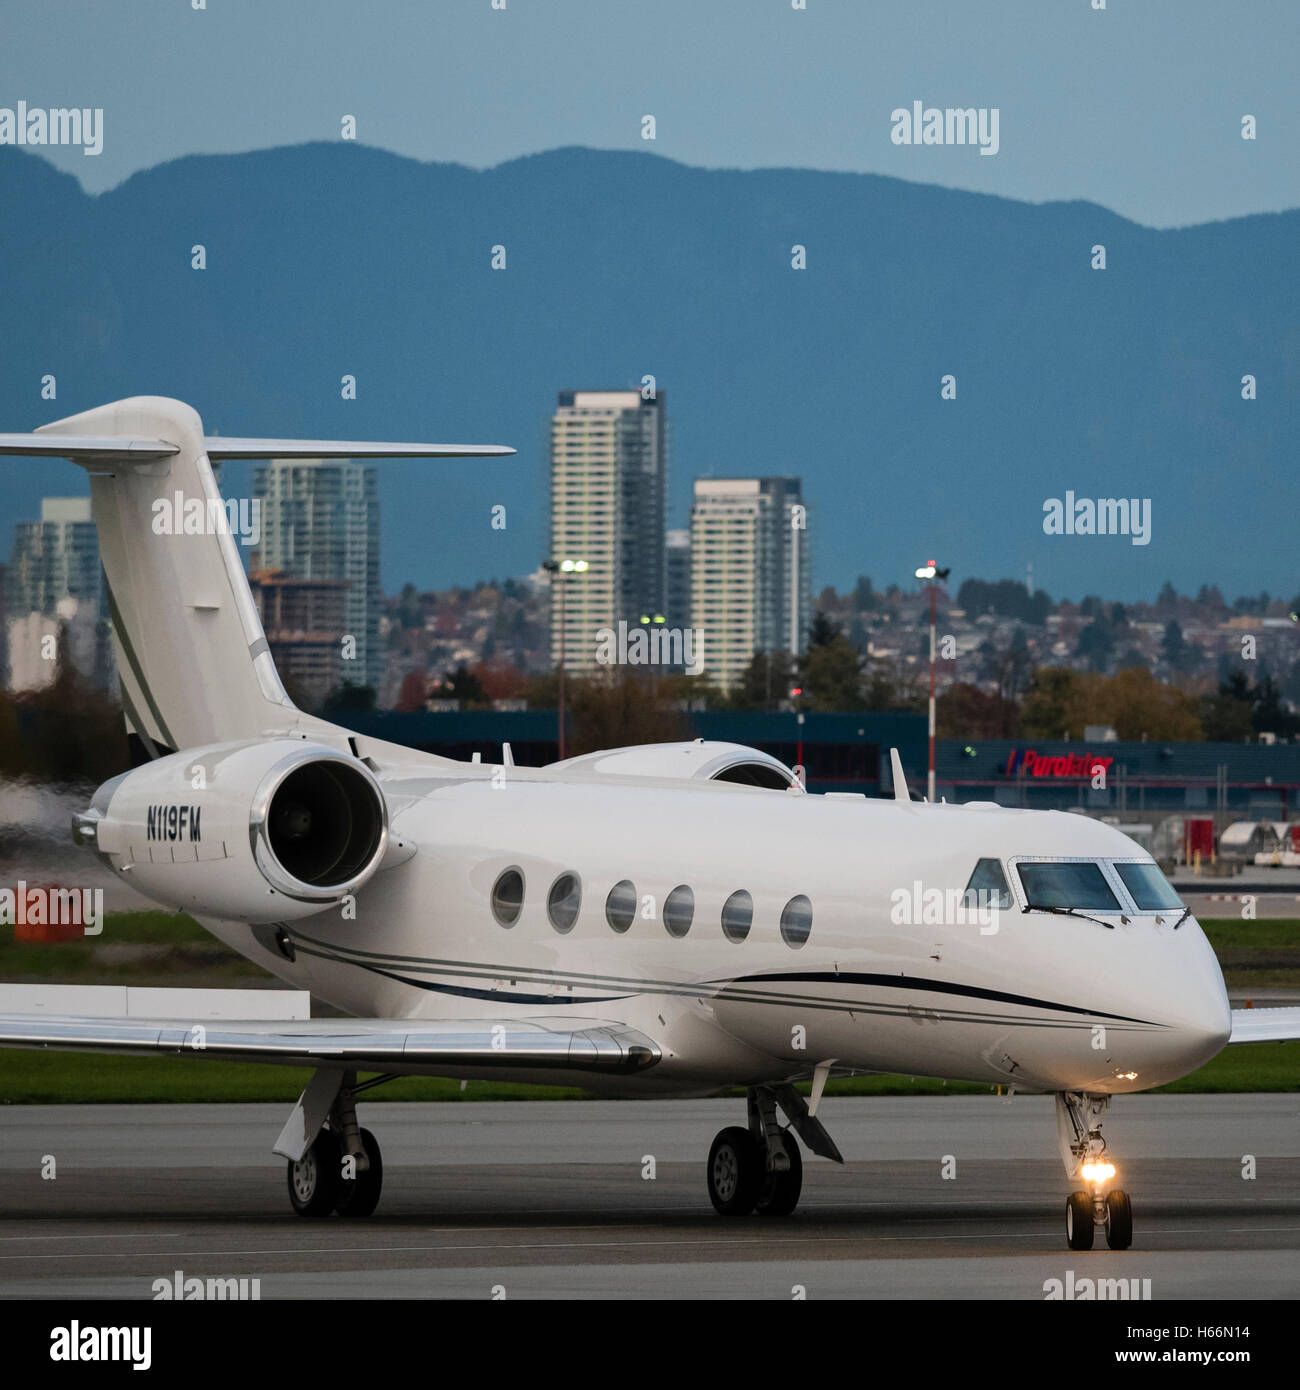 Gulfstream G-IV (N119FM) business jet waits to clear customs, south terminal, Vancouver International Airport, Canada - Stock Image